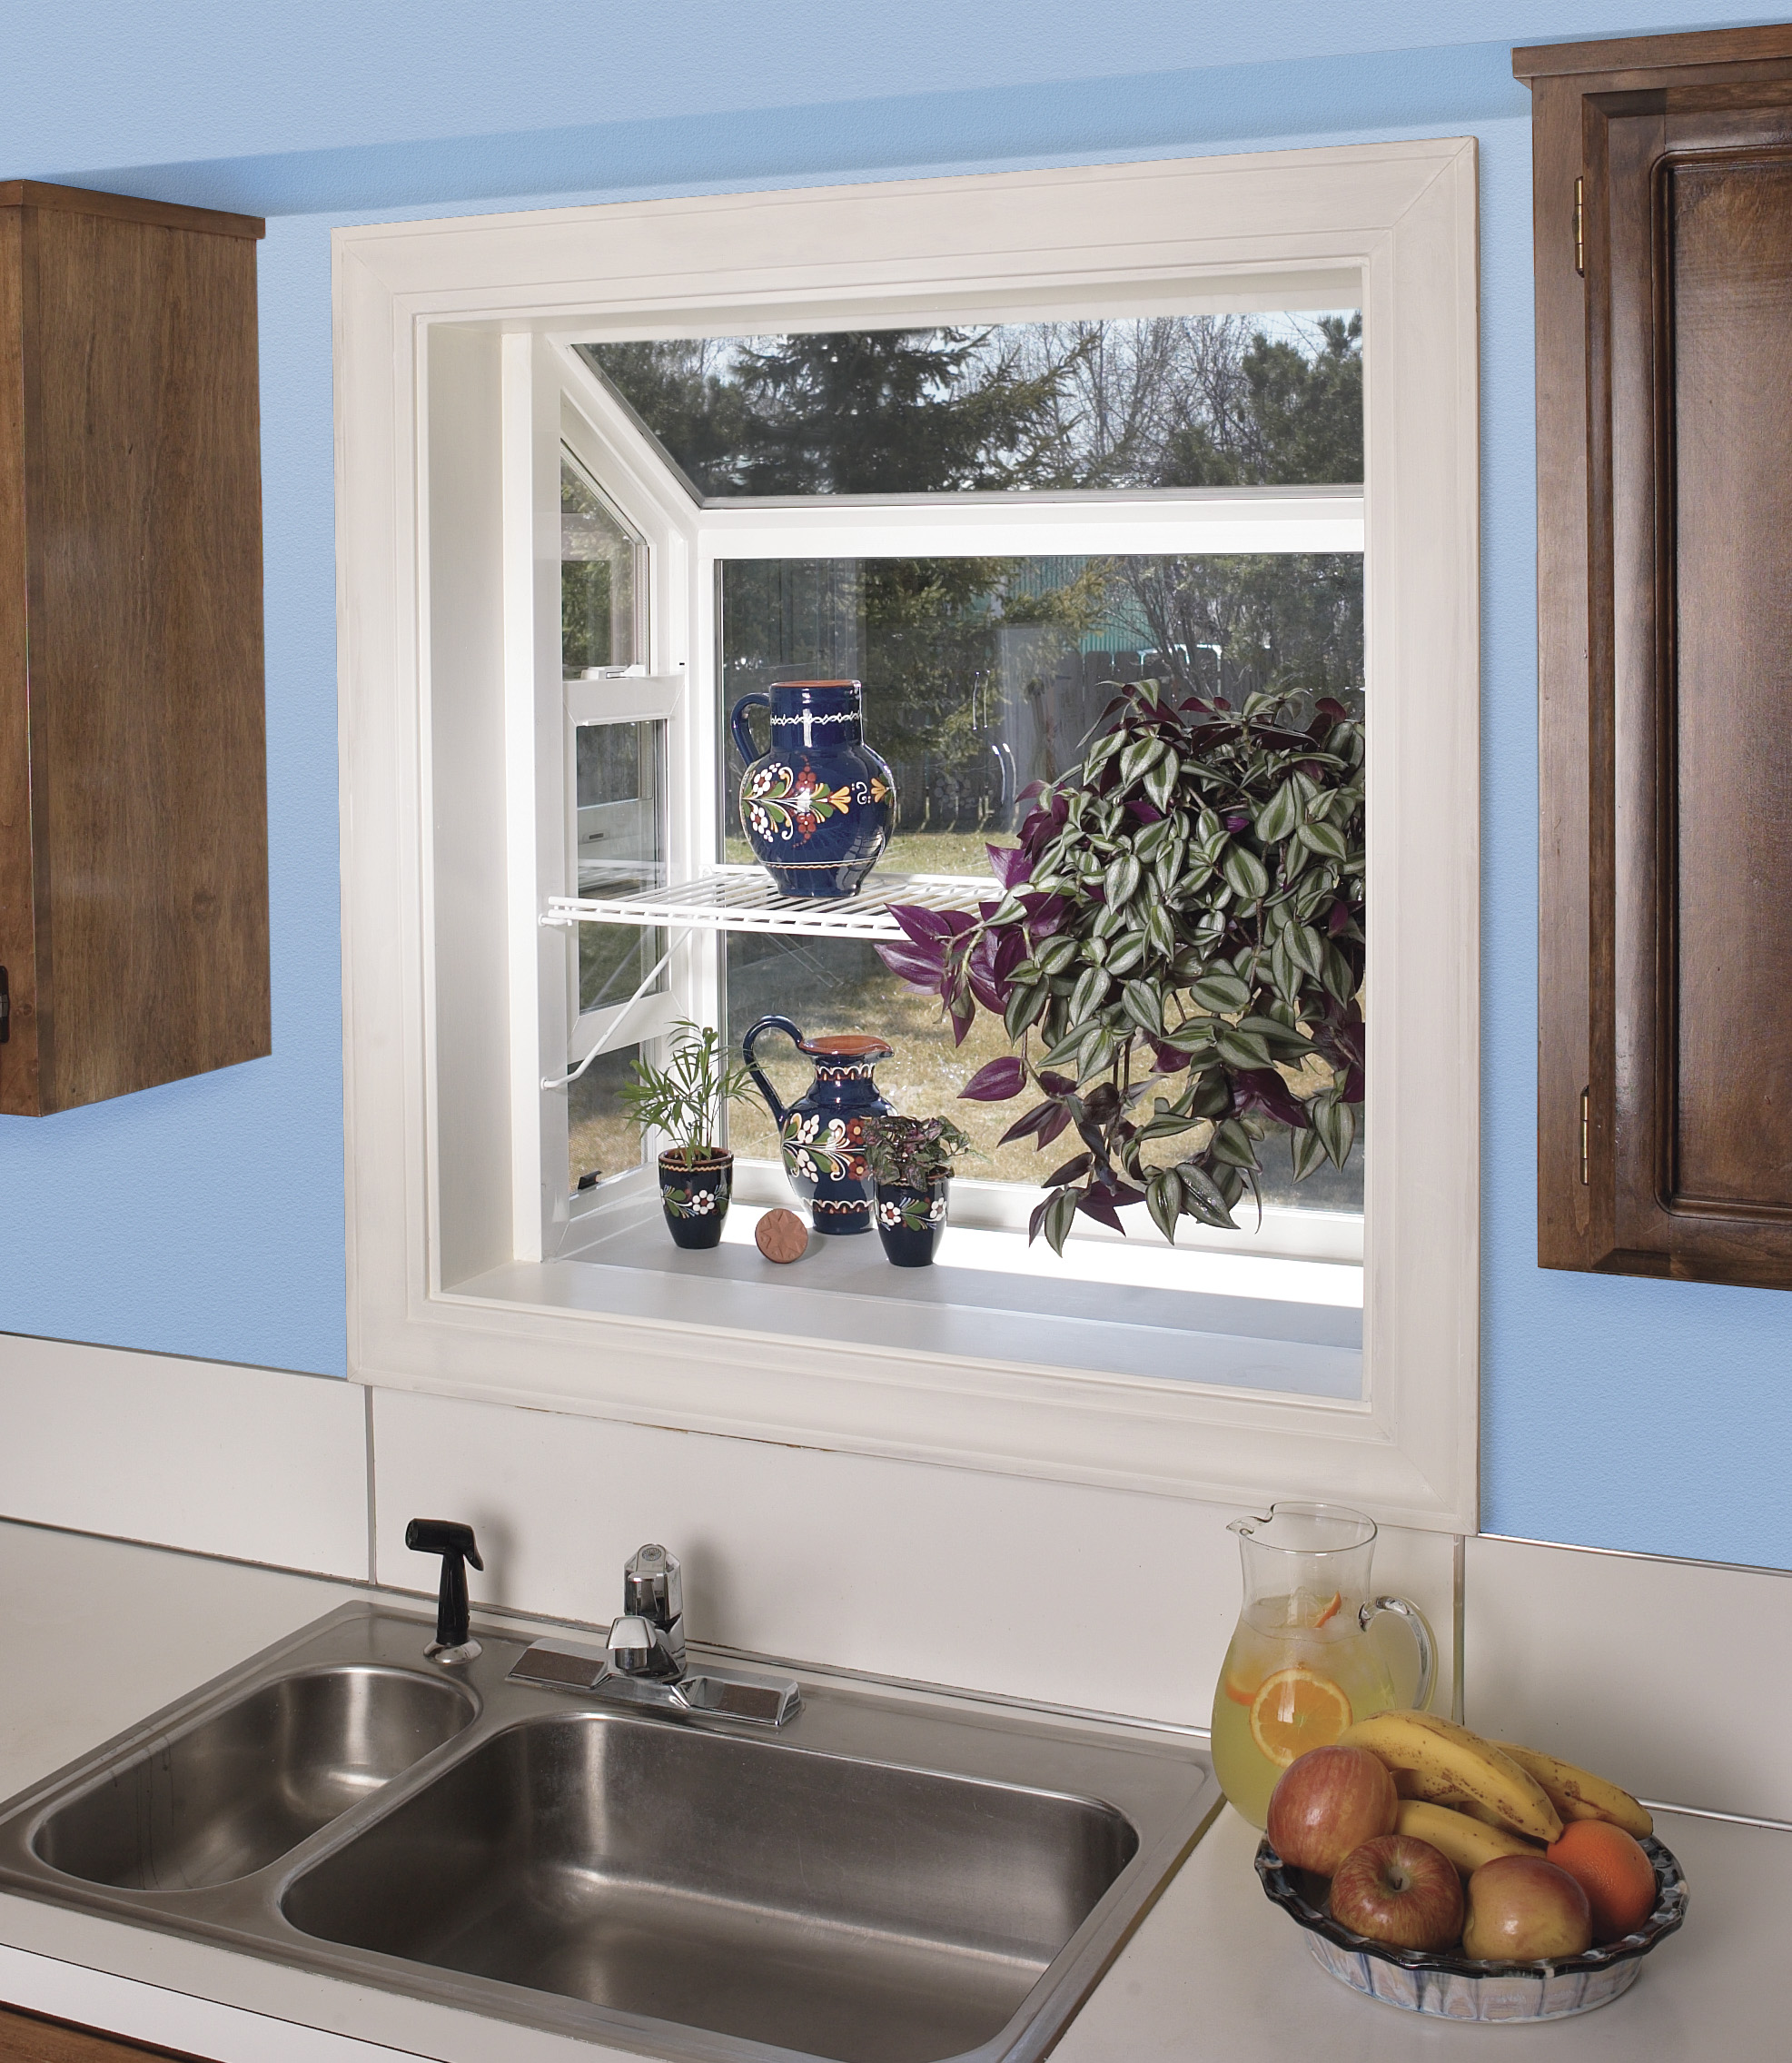 How to decorate garden windows for kitchens so that the for Garden window